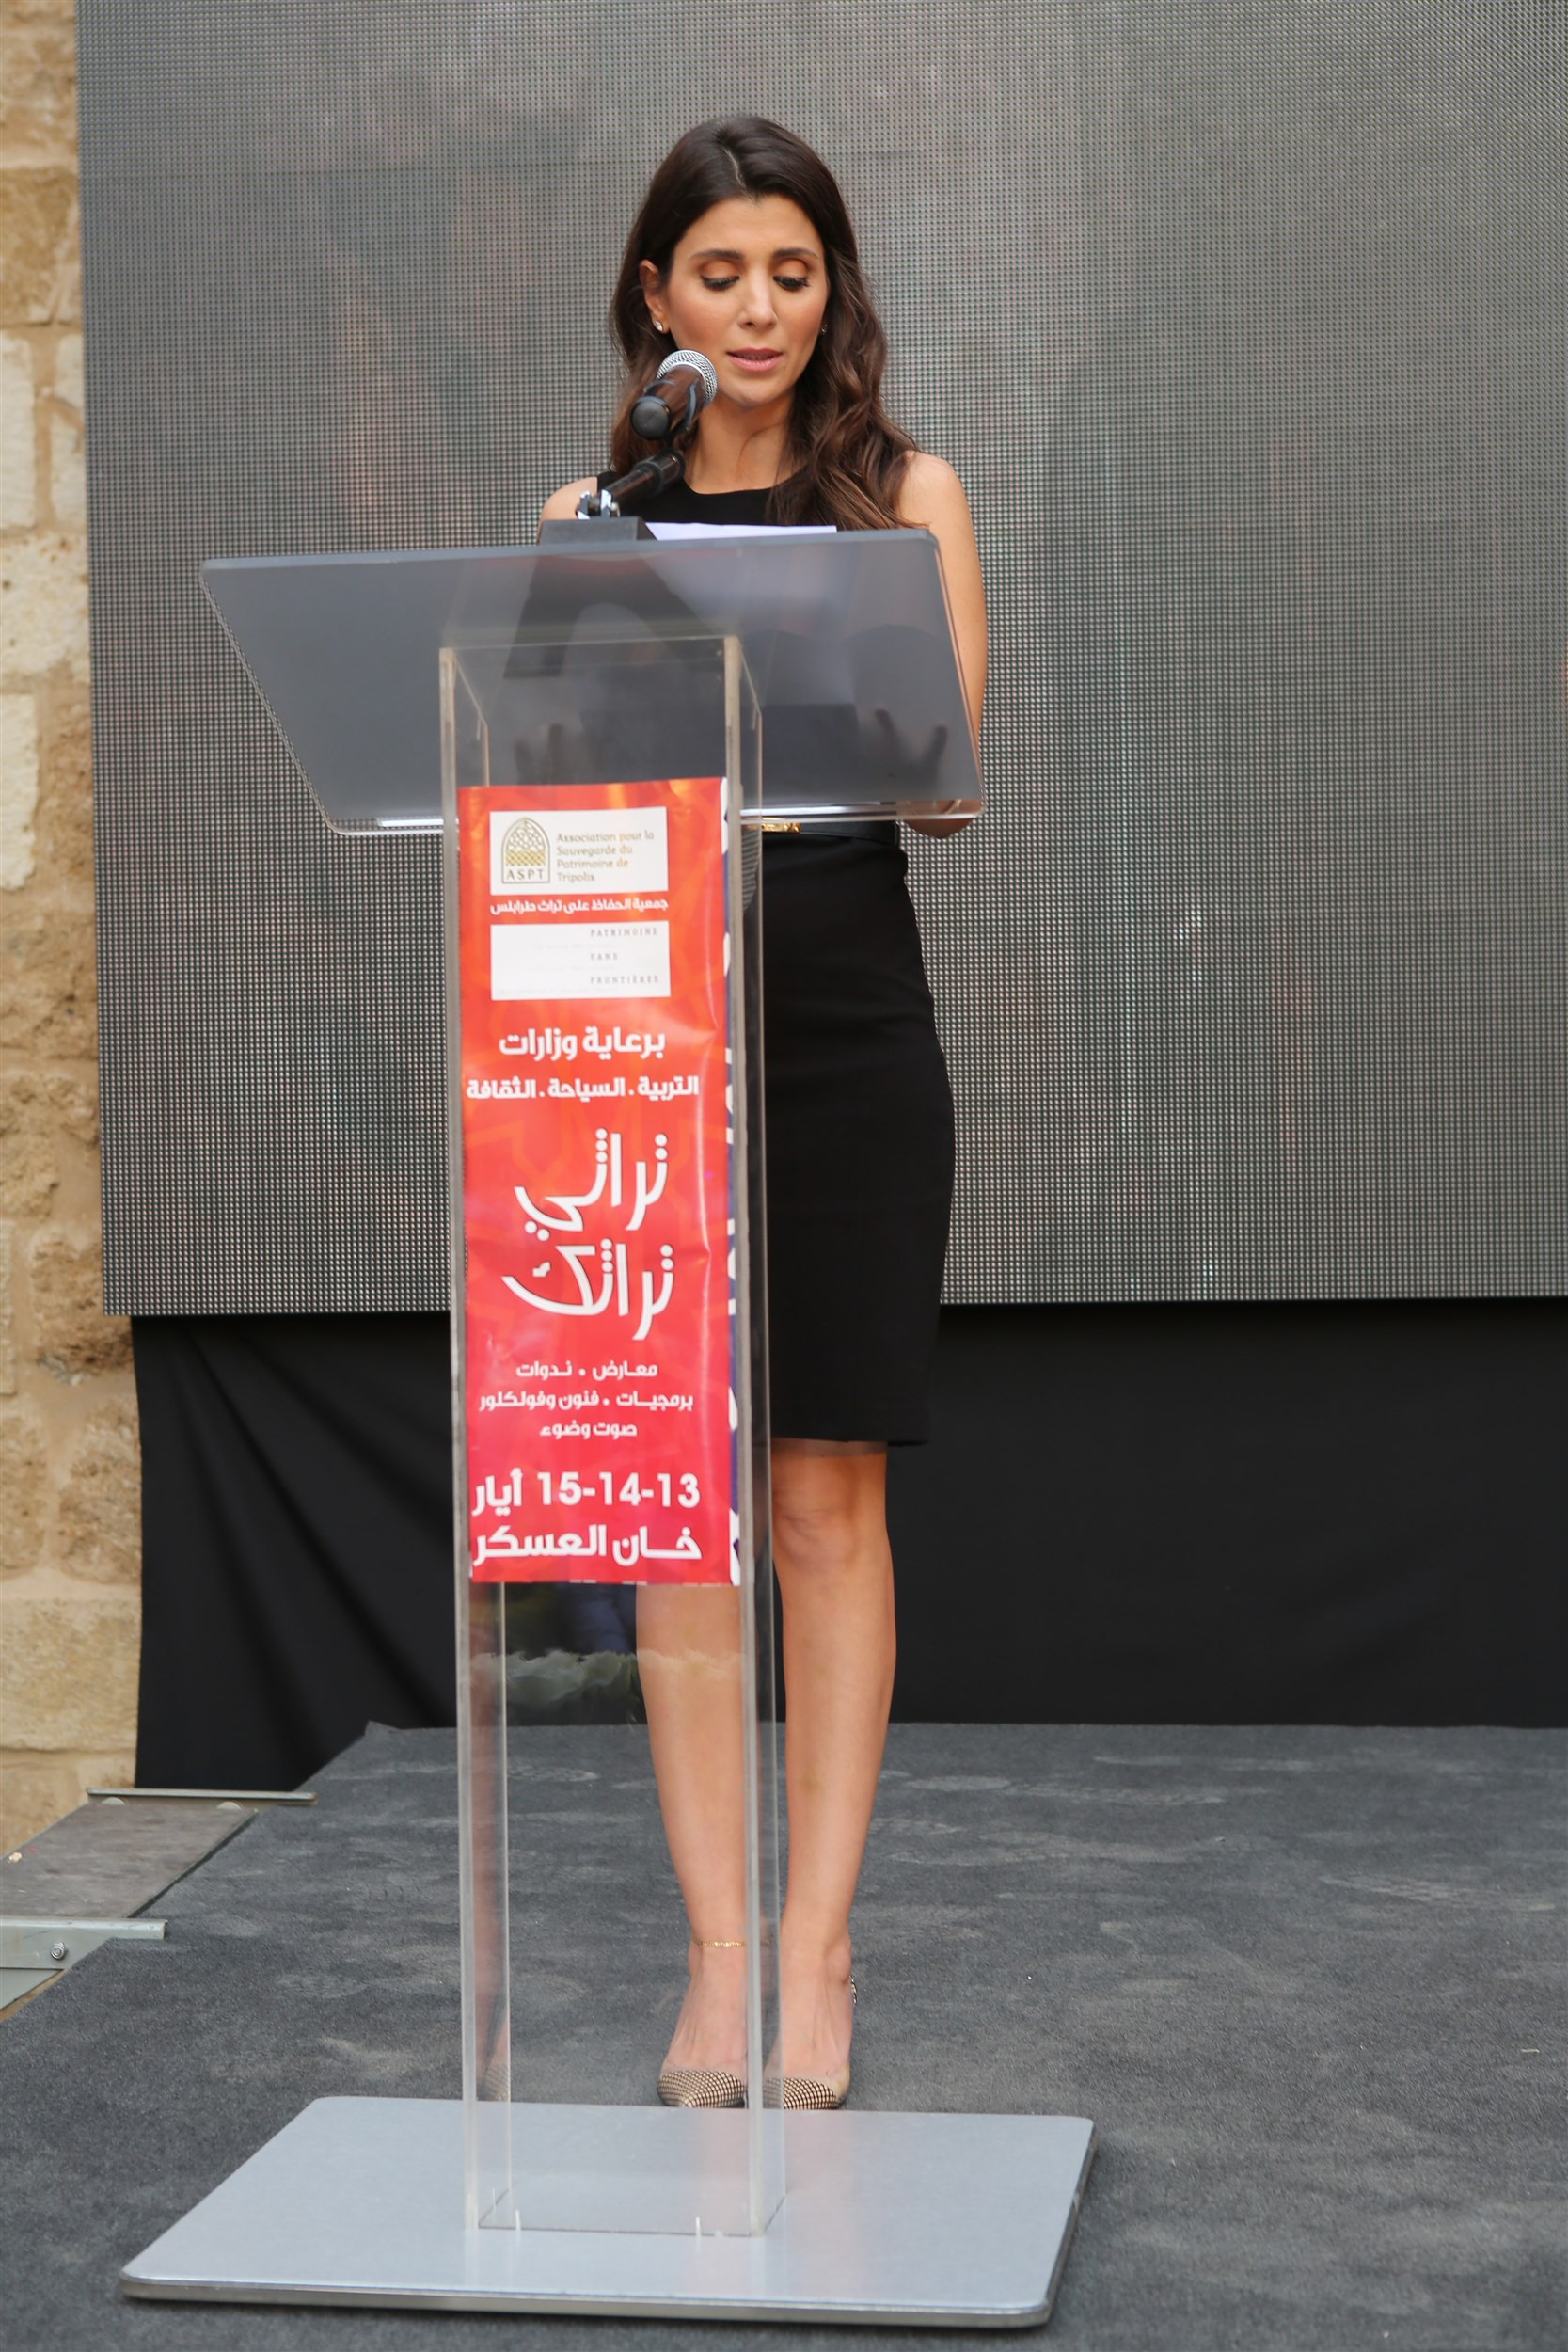 iaaf president mrs. inas al jarmakani delivering her speech as a sponsor to the project believing in her true values of culture